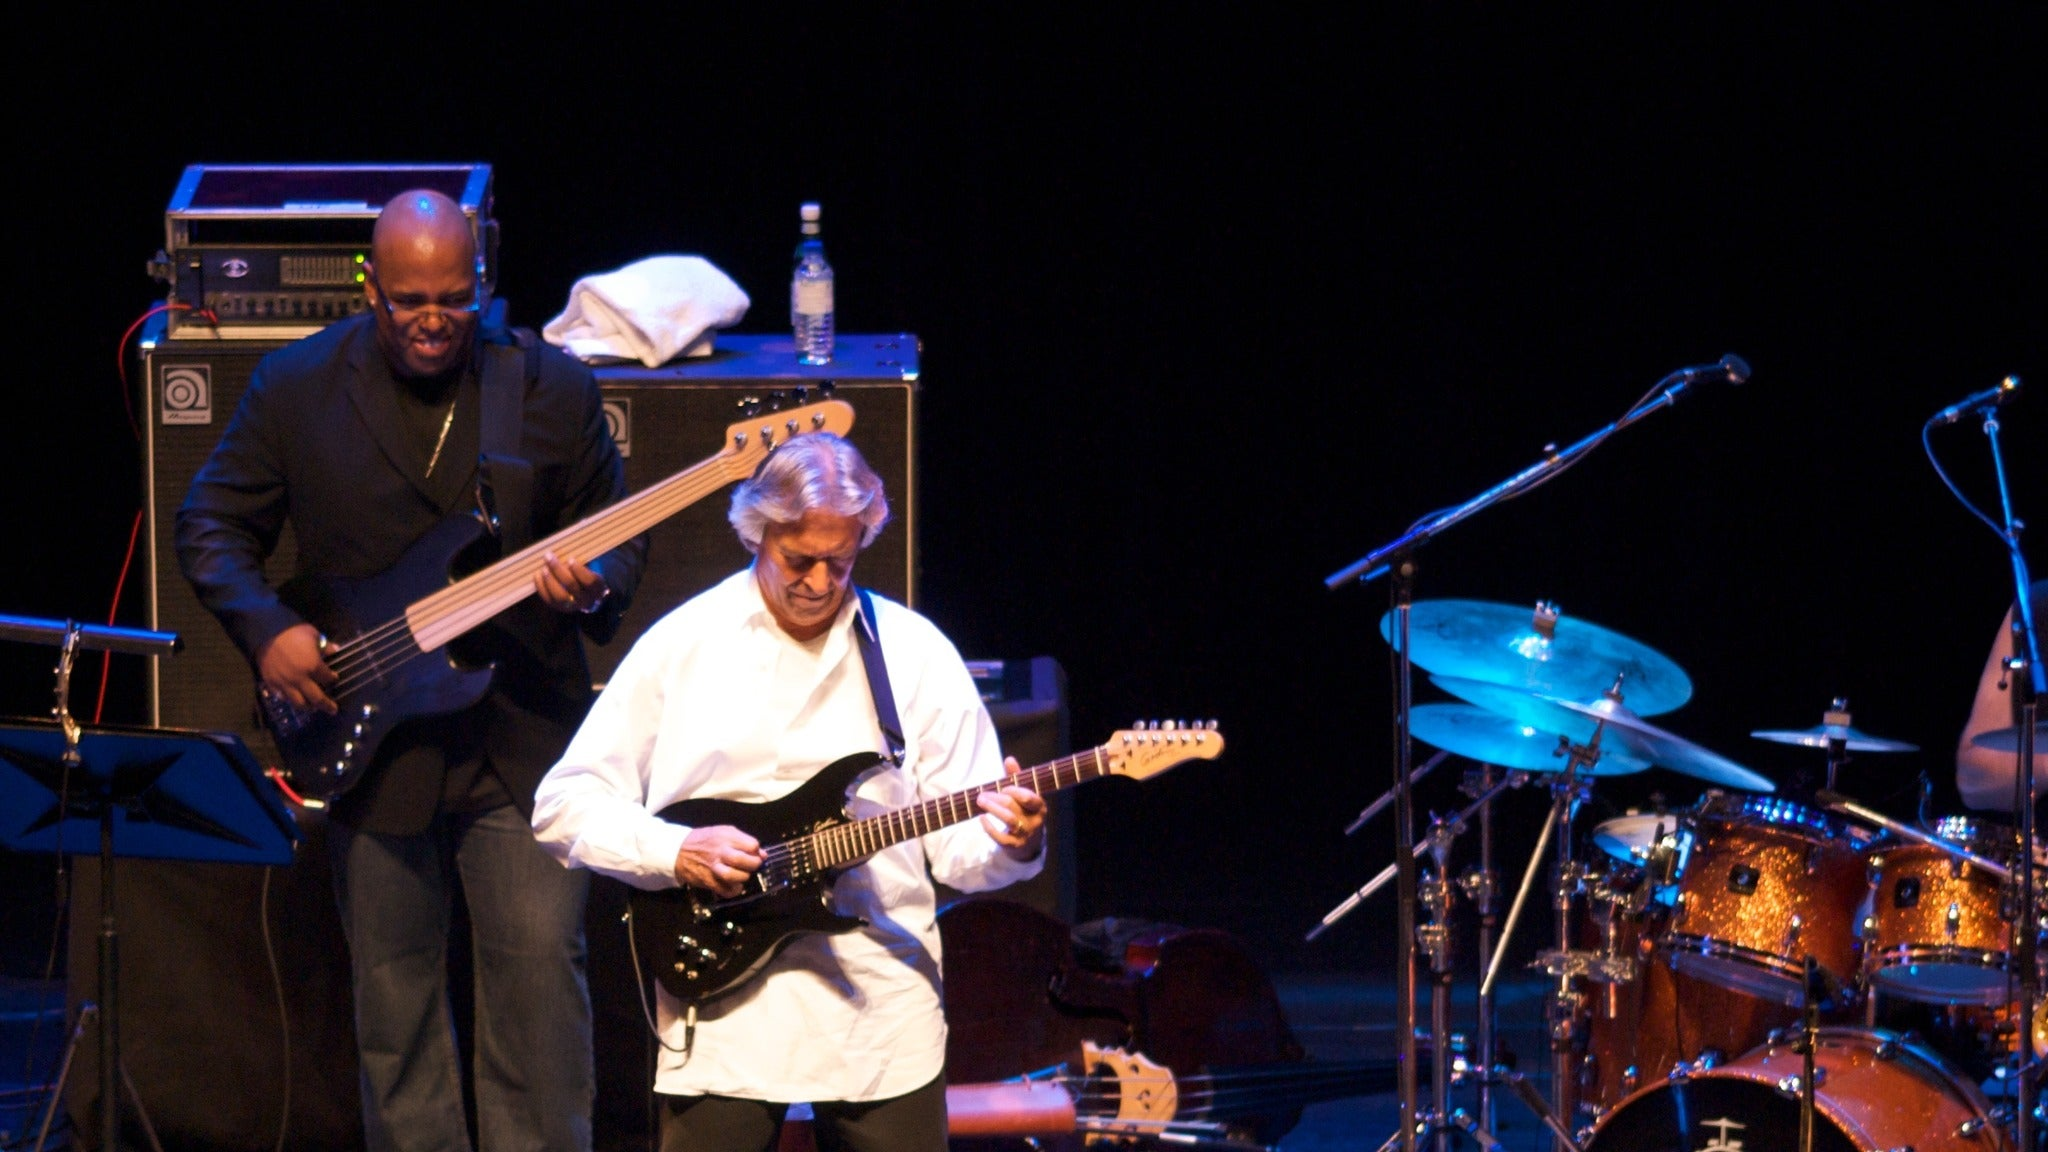 John Mclaughlin & Jimmy Herring at Royce Hall - UCLA